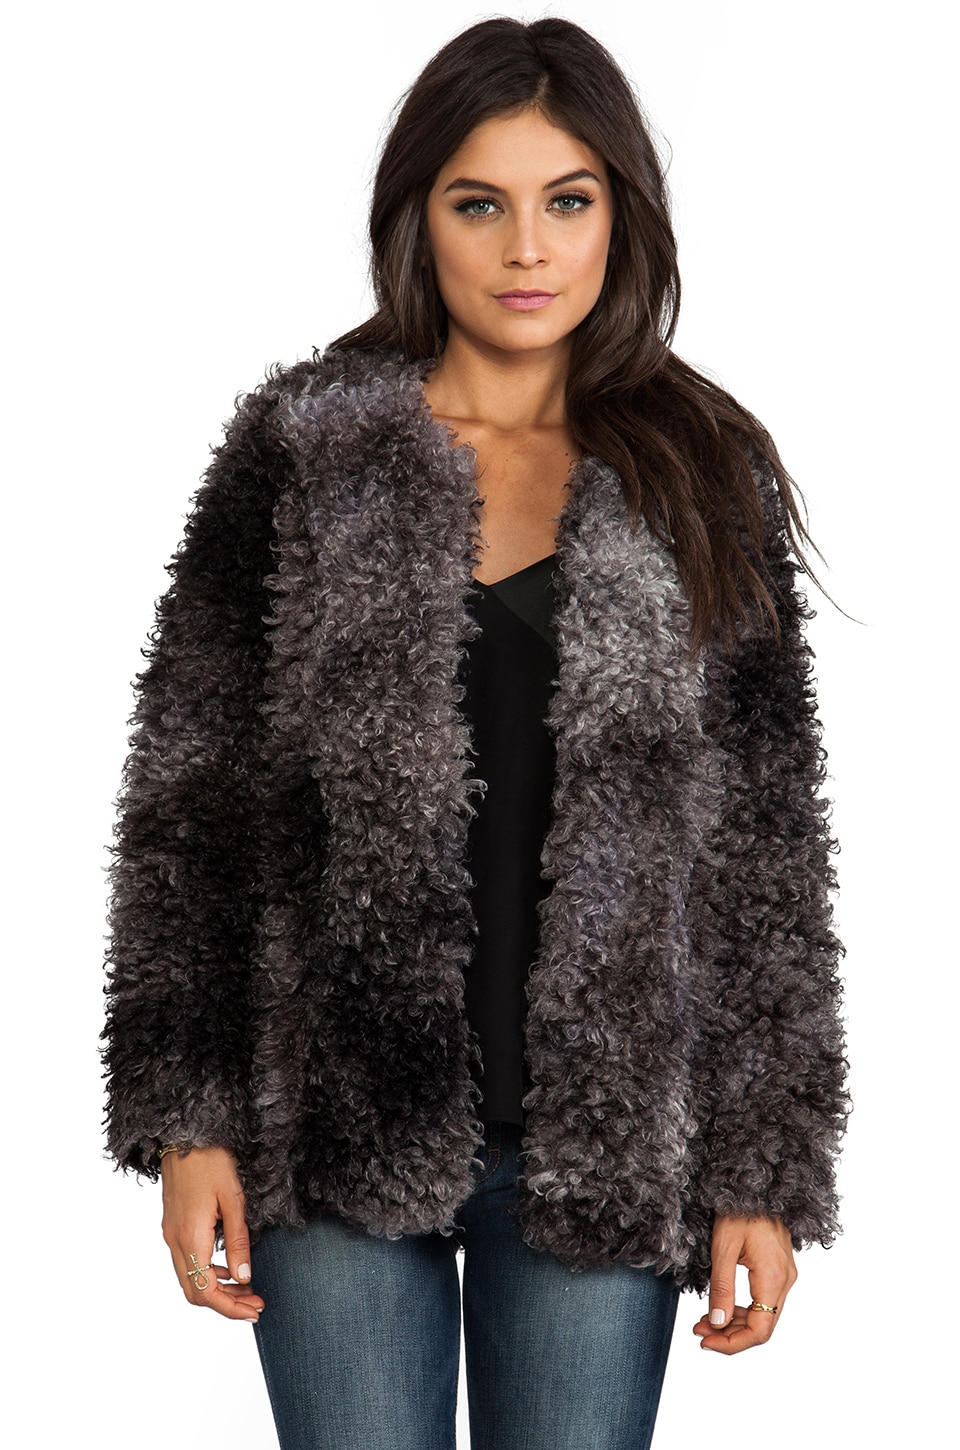 Smythe Chubby Faux Fur Jacket in Grey Melange